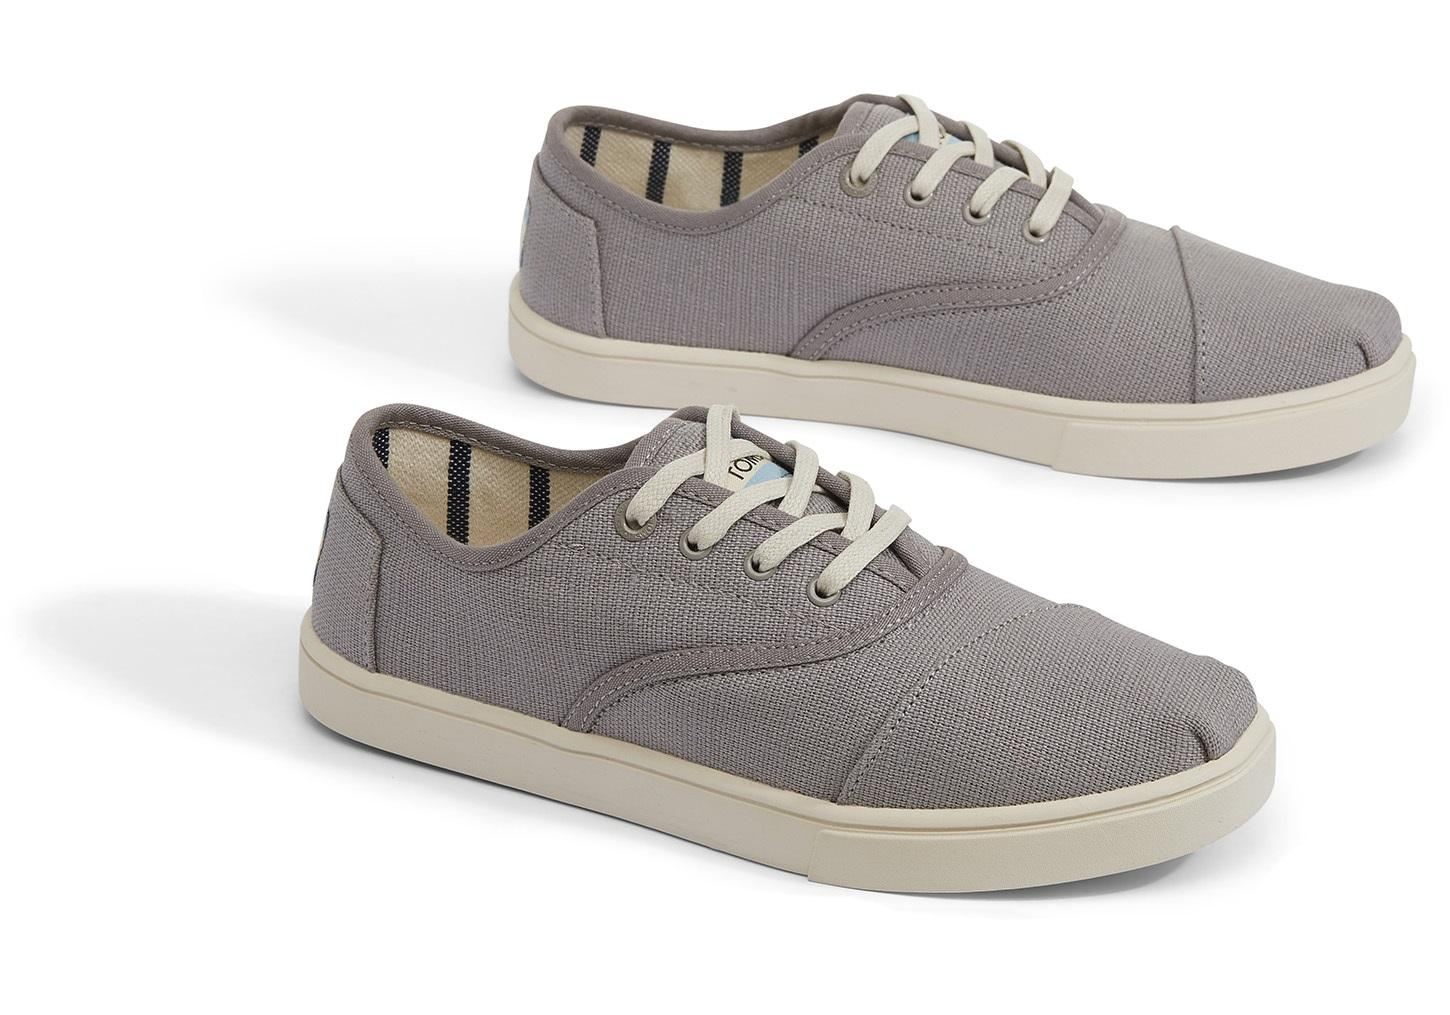 39bf68d2402 ... Morning Dove Heritage Canvas Women s Cupsole Cordones Sneakers Venice  Collection - Lyst. View fullscreen